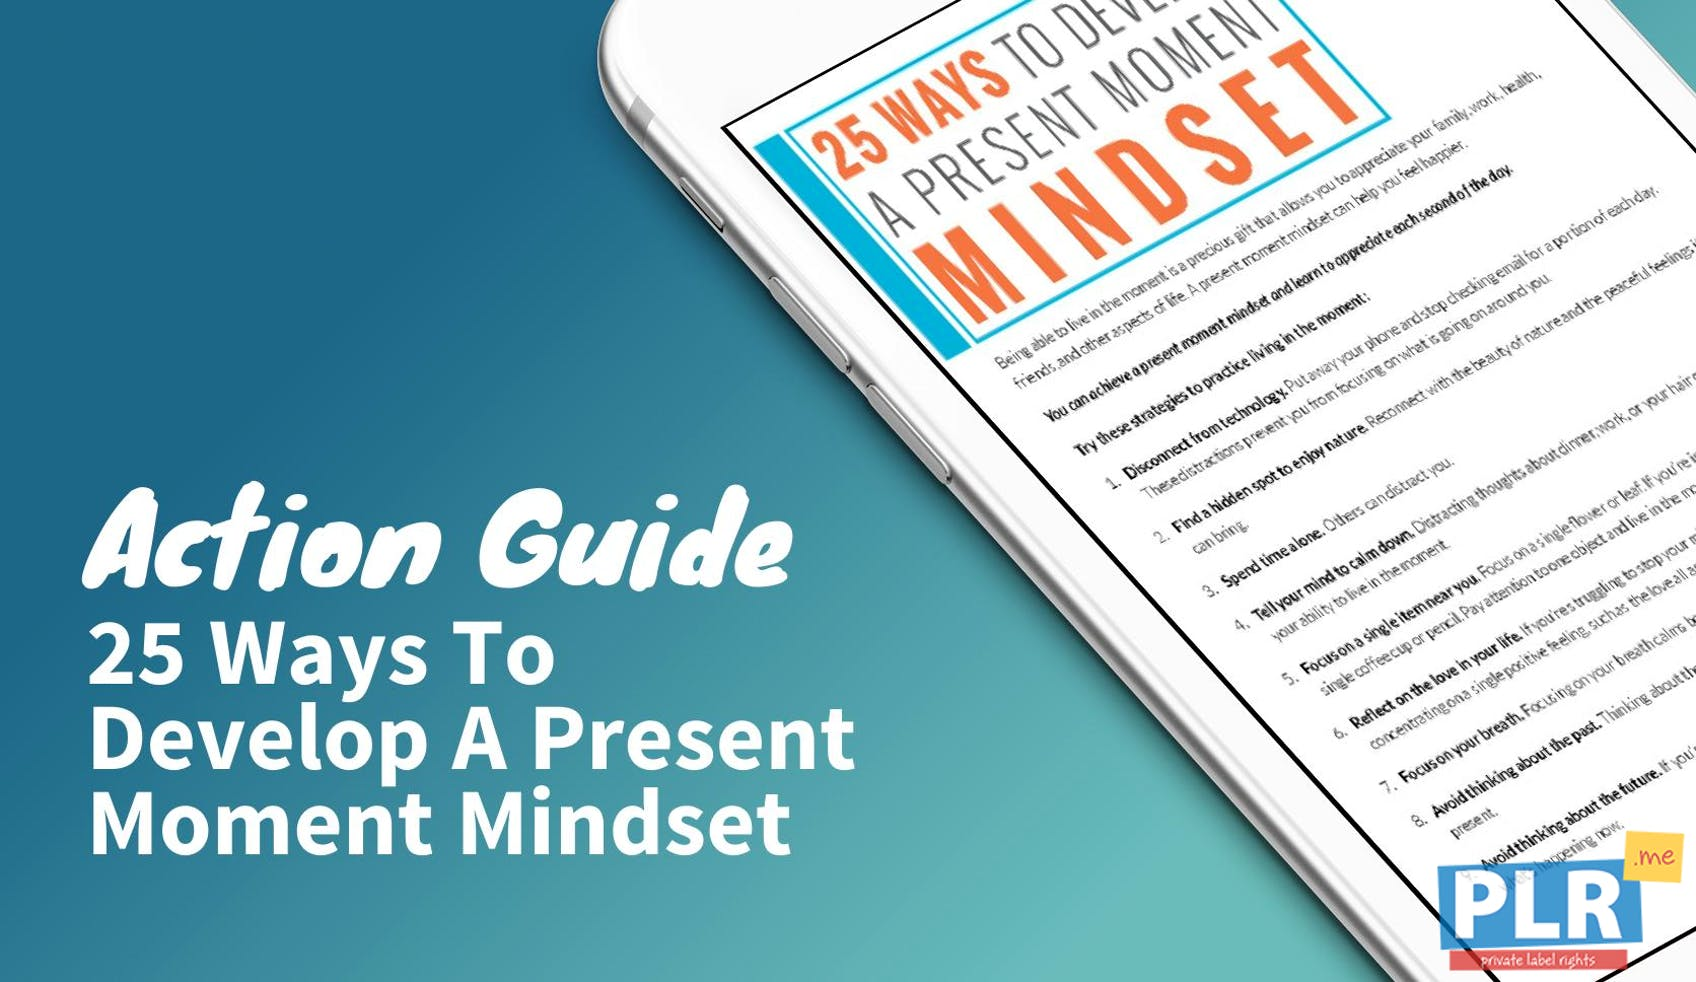 25 Ways To Develop A Present Moment Mindset